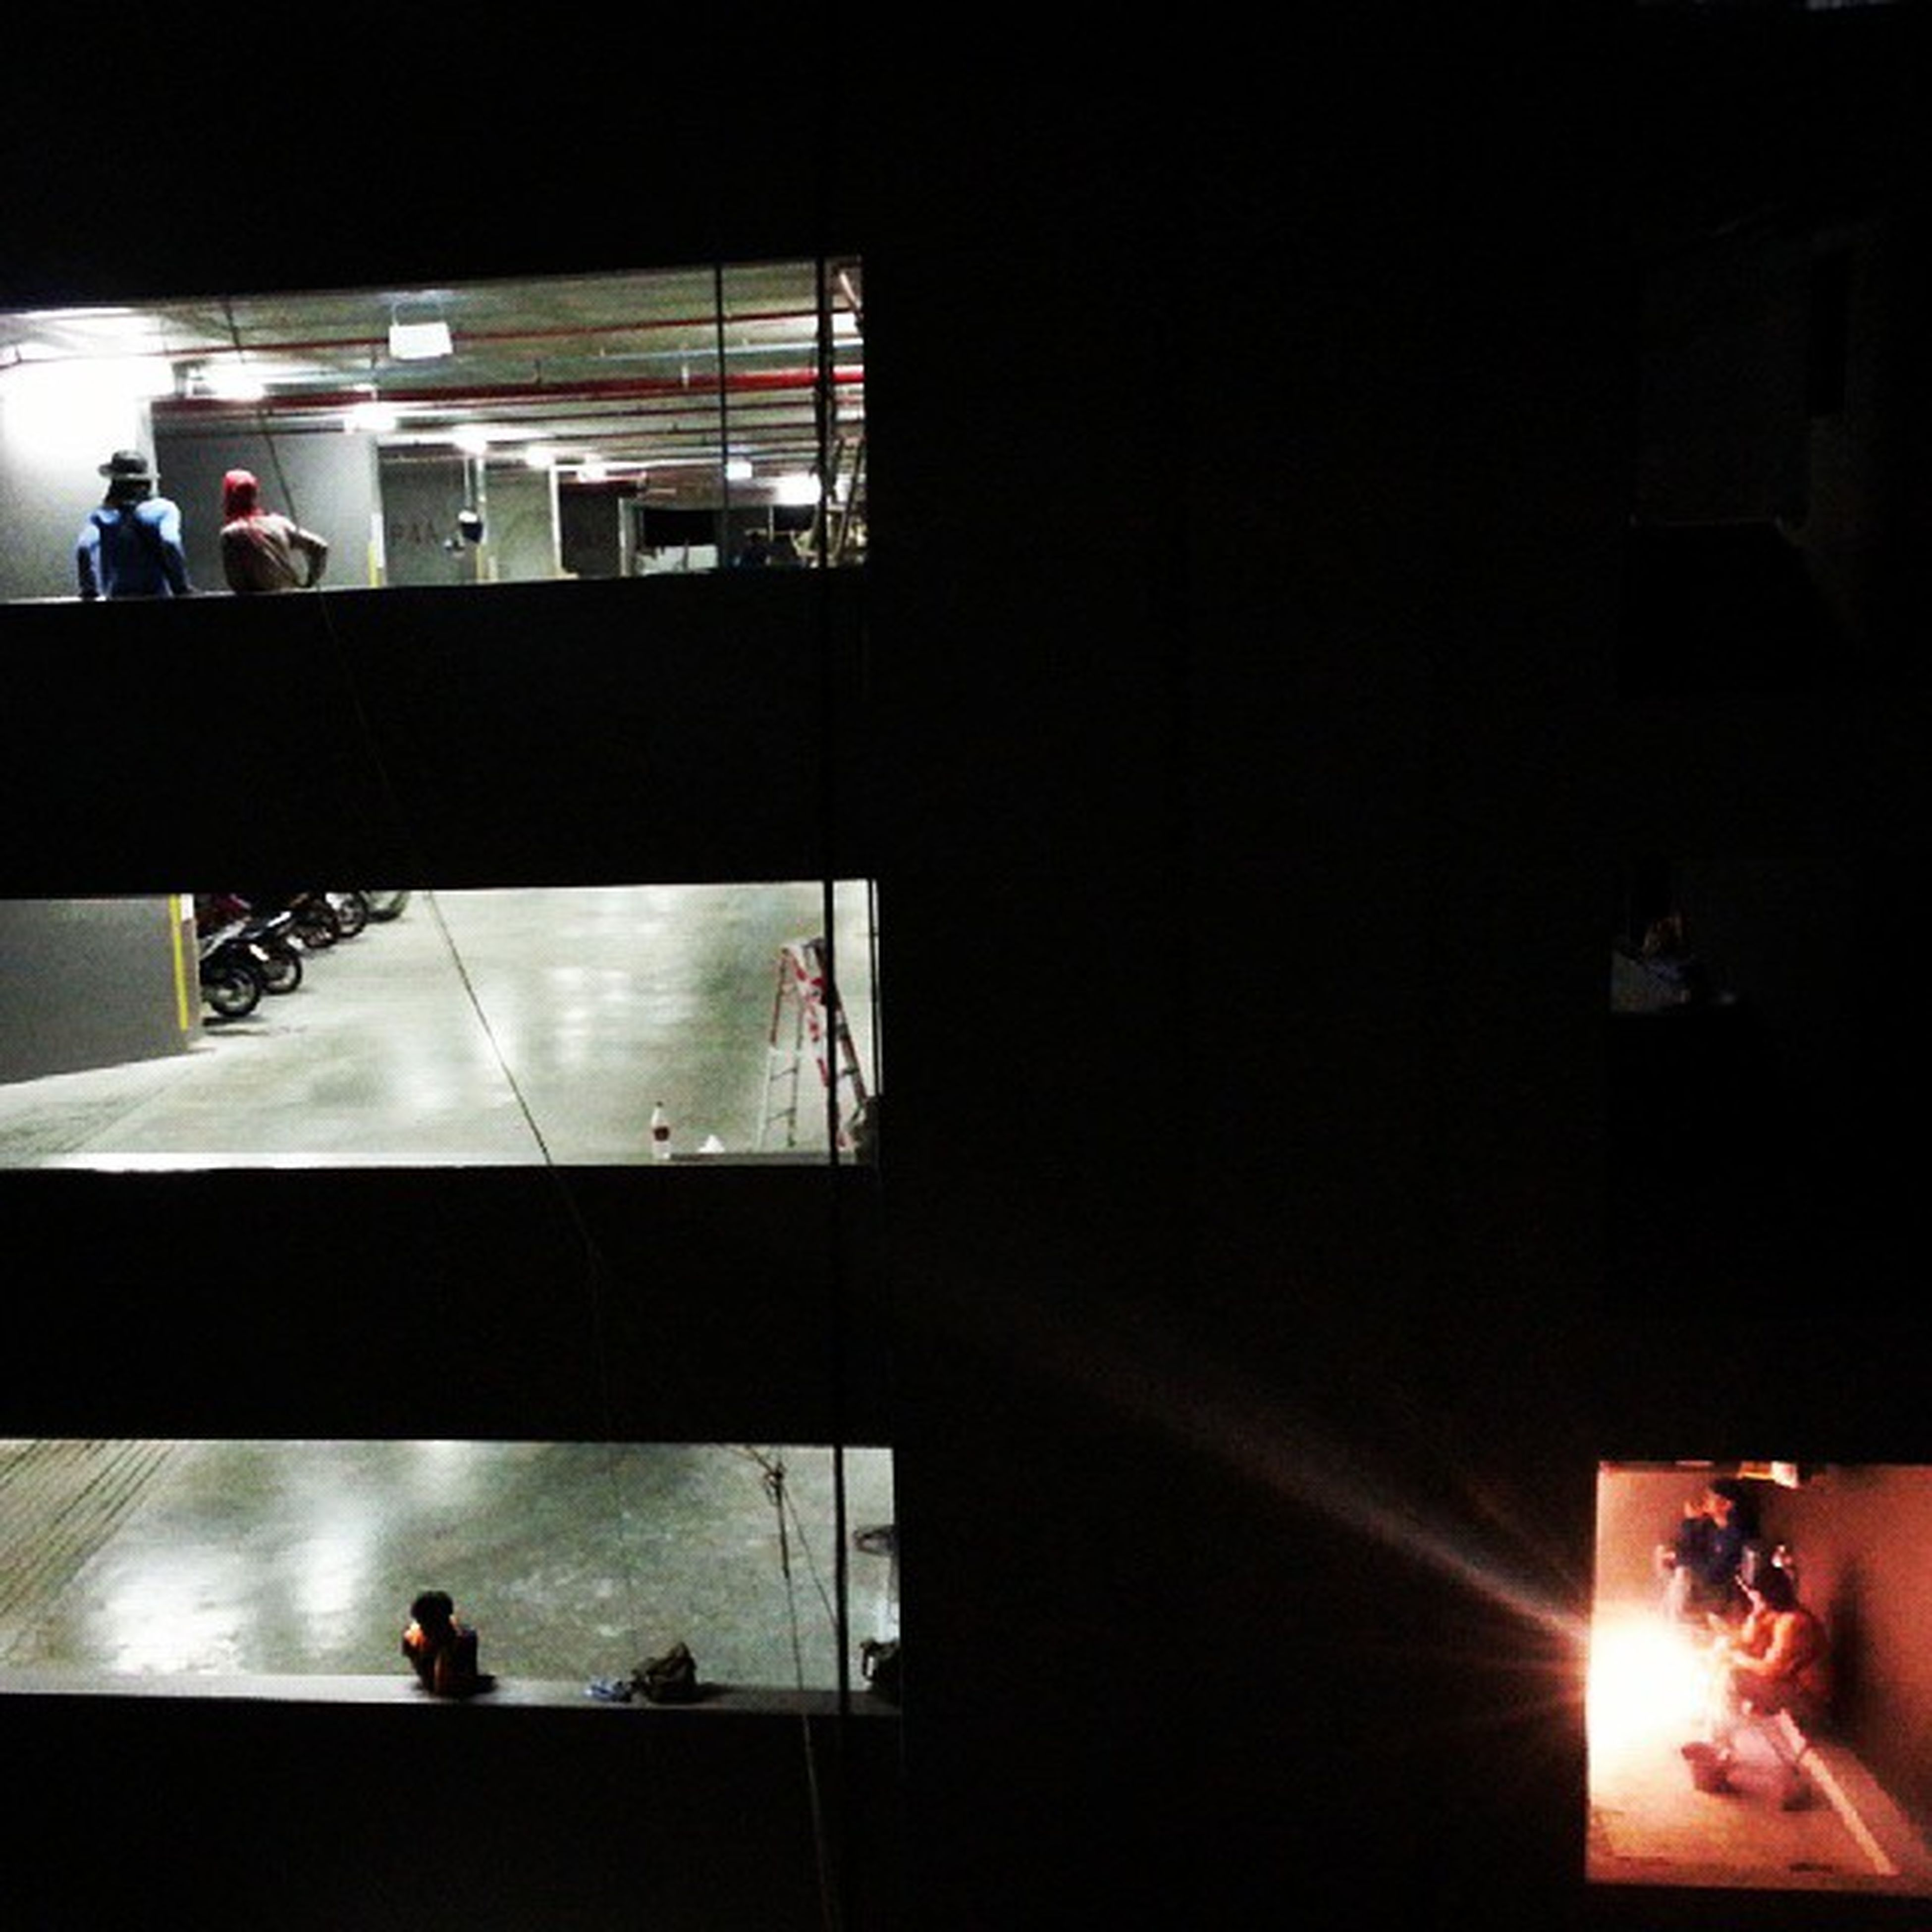 indoors, illuminated, night, built structure, dark, lighting equipment, architecture, window, lifestyles, men, silhouette, leisure activity, glass - material, standing, person, reflection, sitting, incidental people